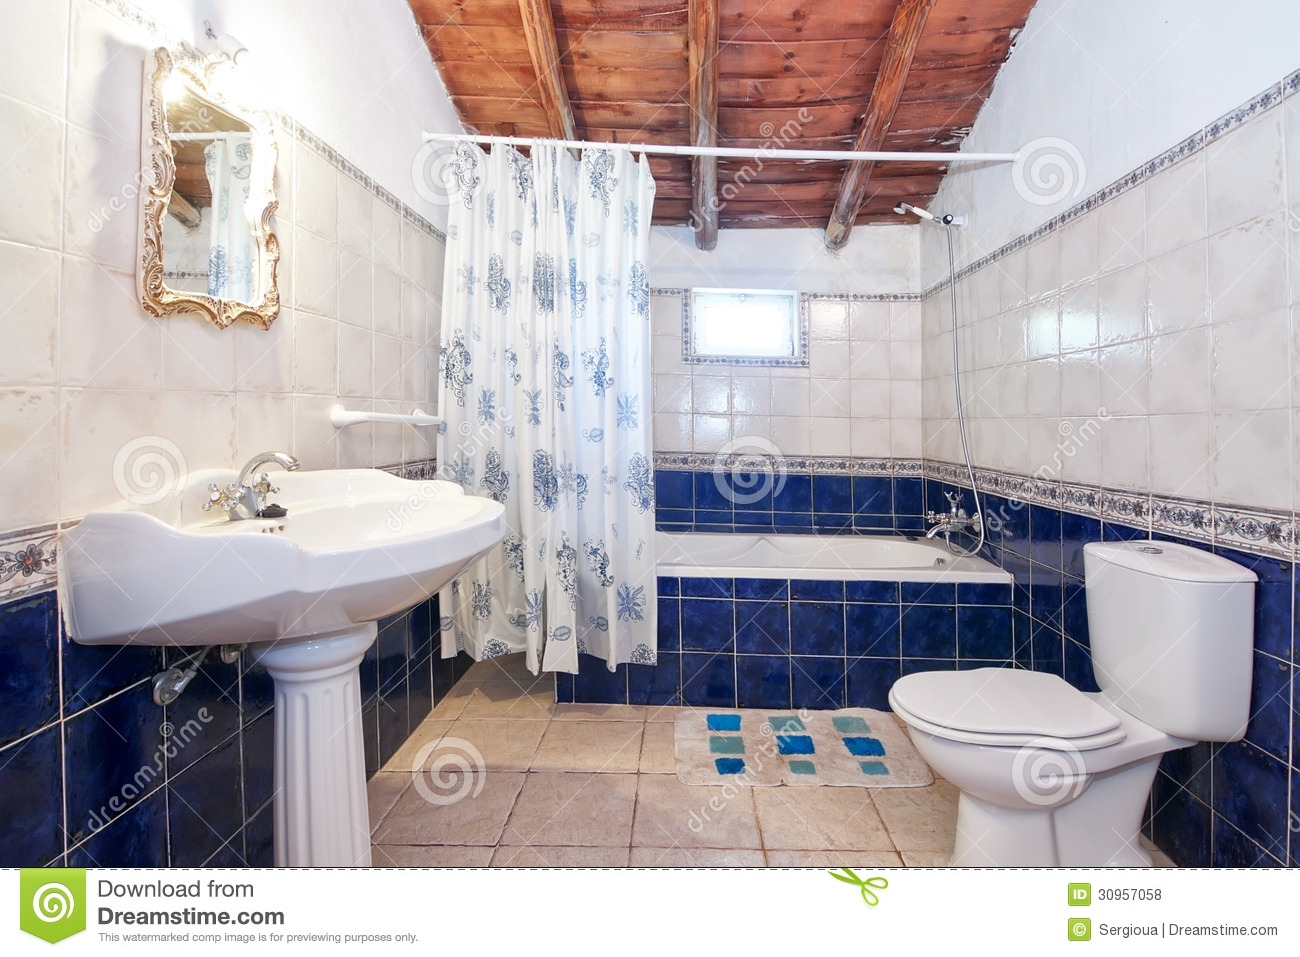 Retro Blue Bathroom Tile Vintage retro bathroom.